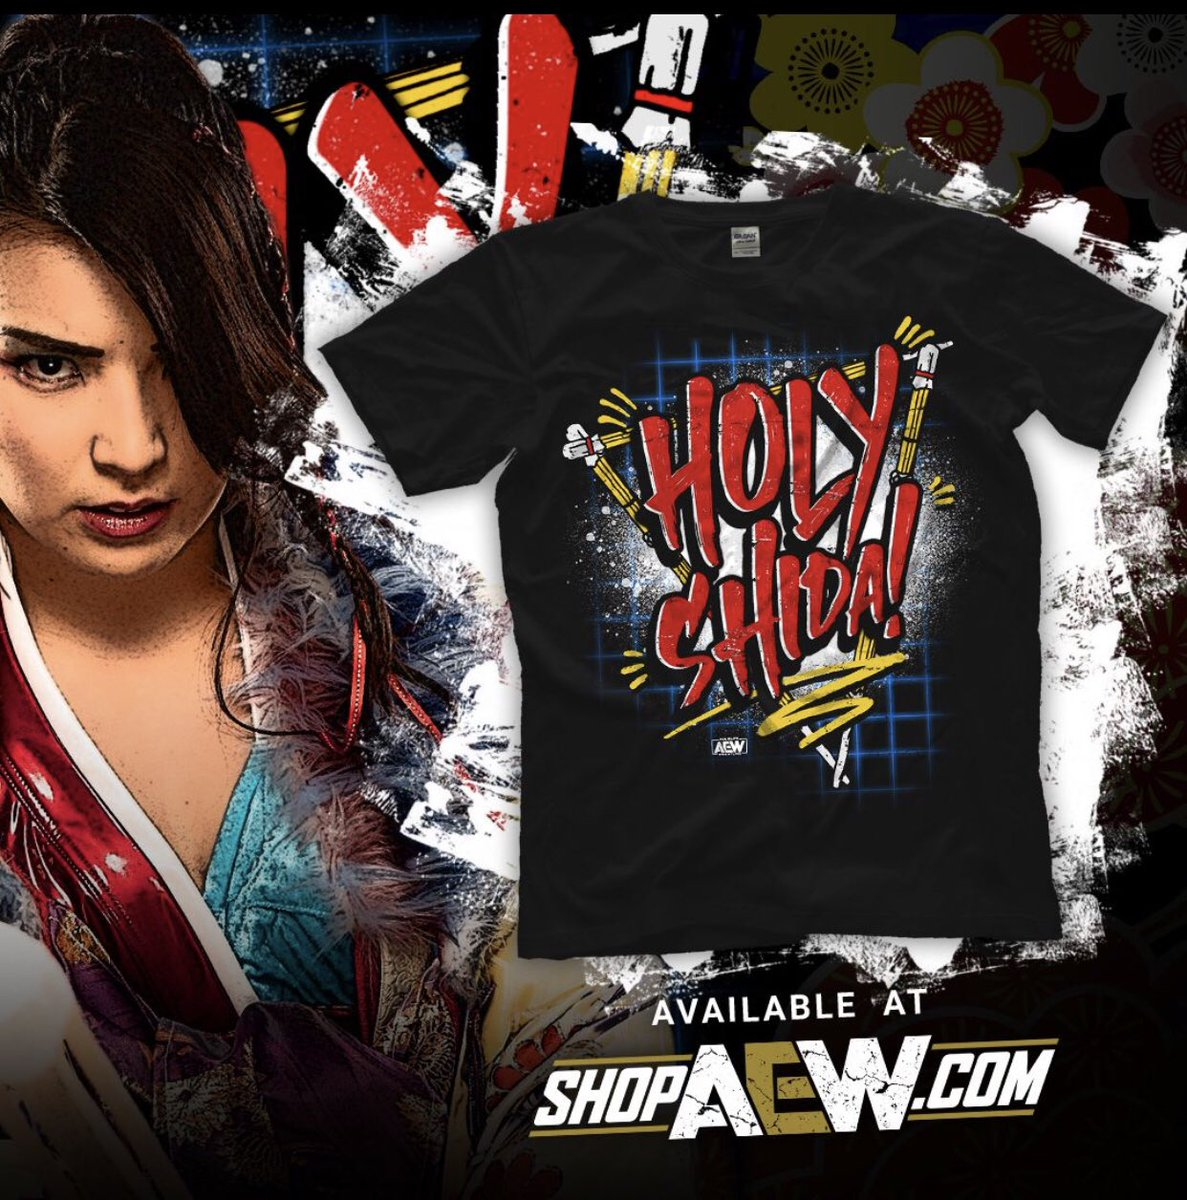 HOLY SHIDA! New AEW women's Champion! Go get her new shirt!  Use code DON to save 20% till noon cst May 25! #AEWDoubleorNothing #AEWDynamite  <br>http://pic.twitter.com/o3Md6xKs78